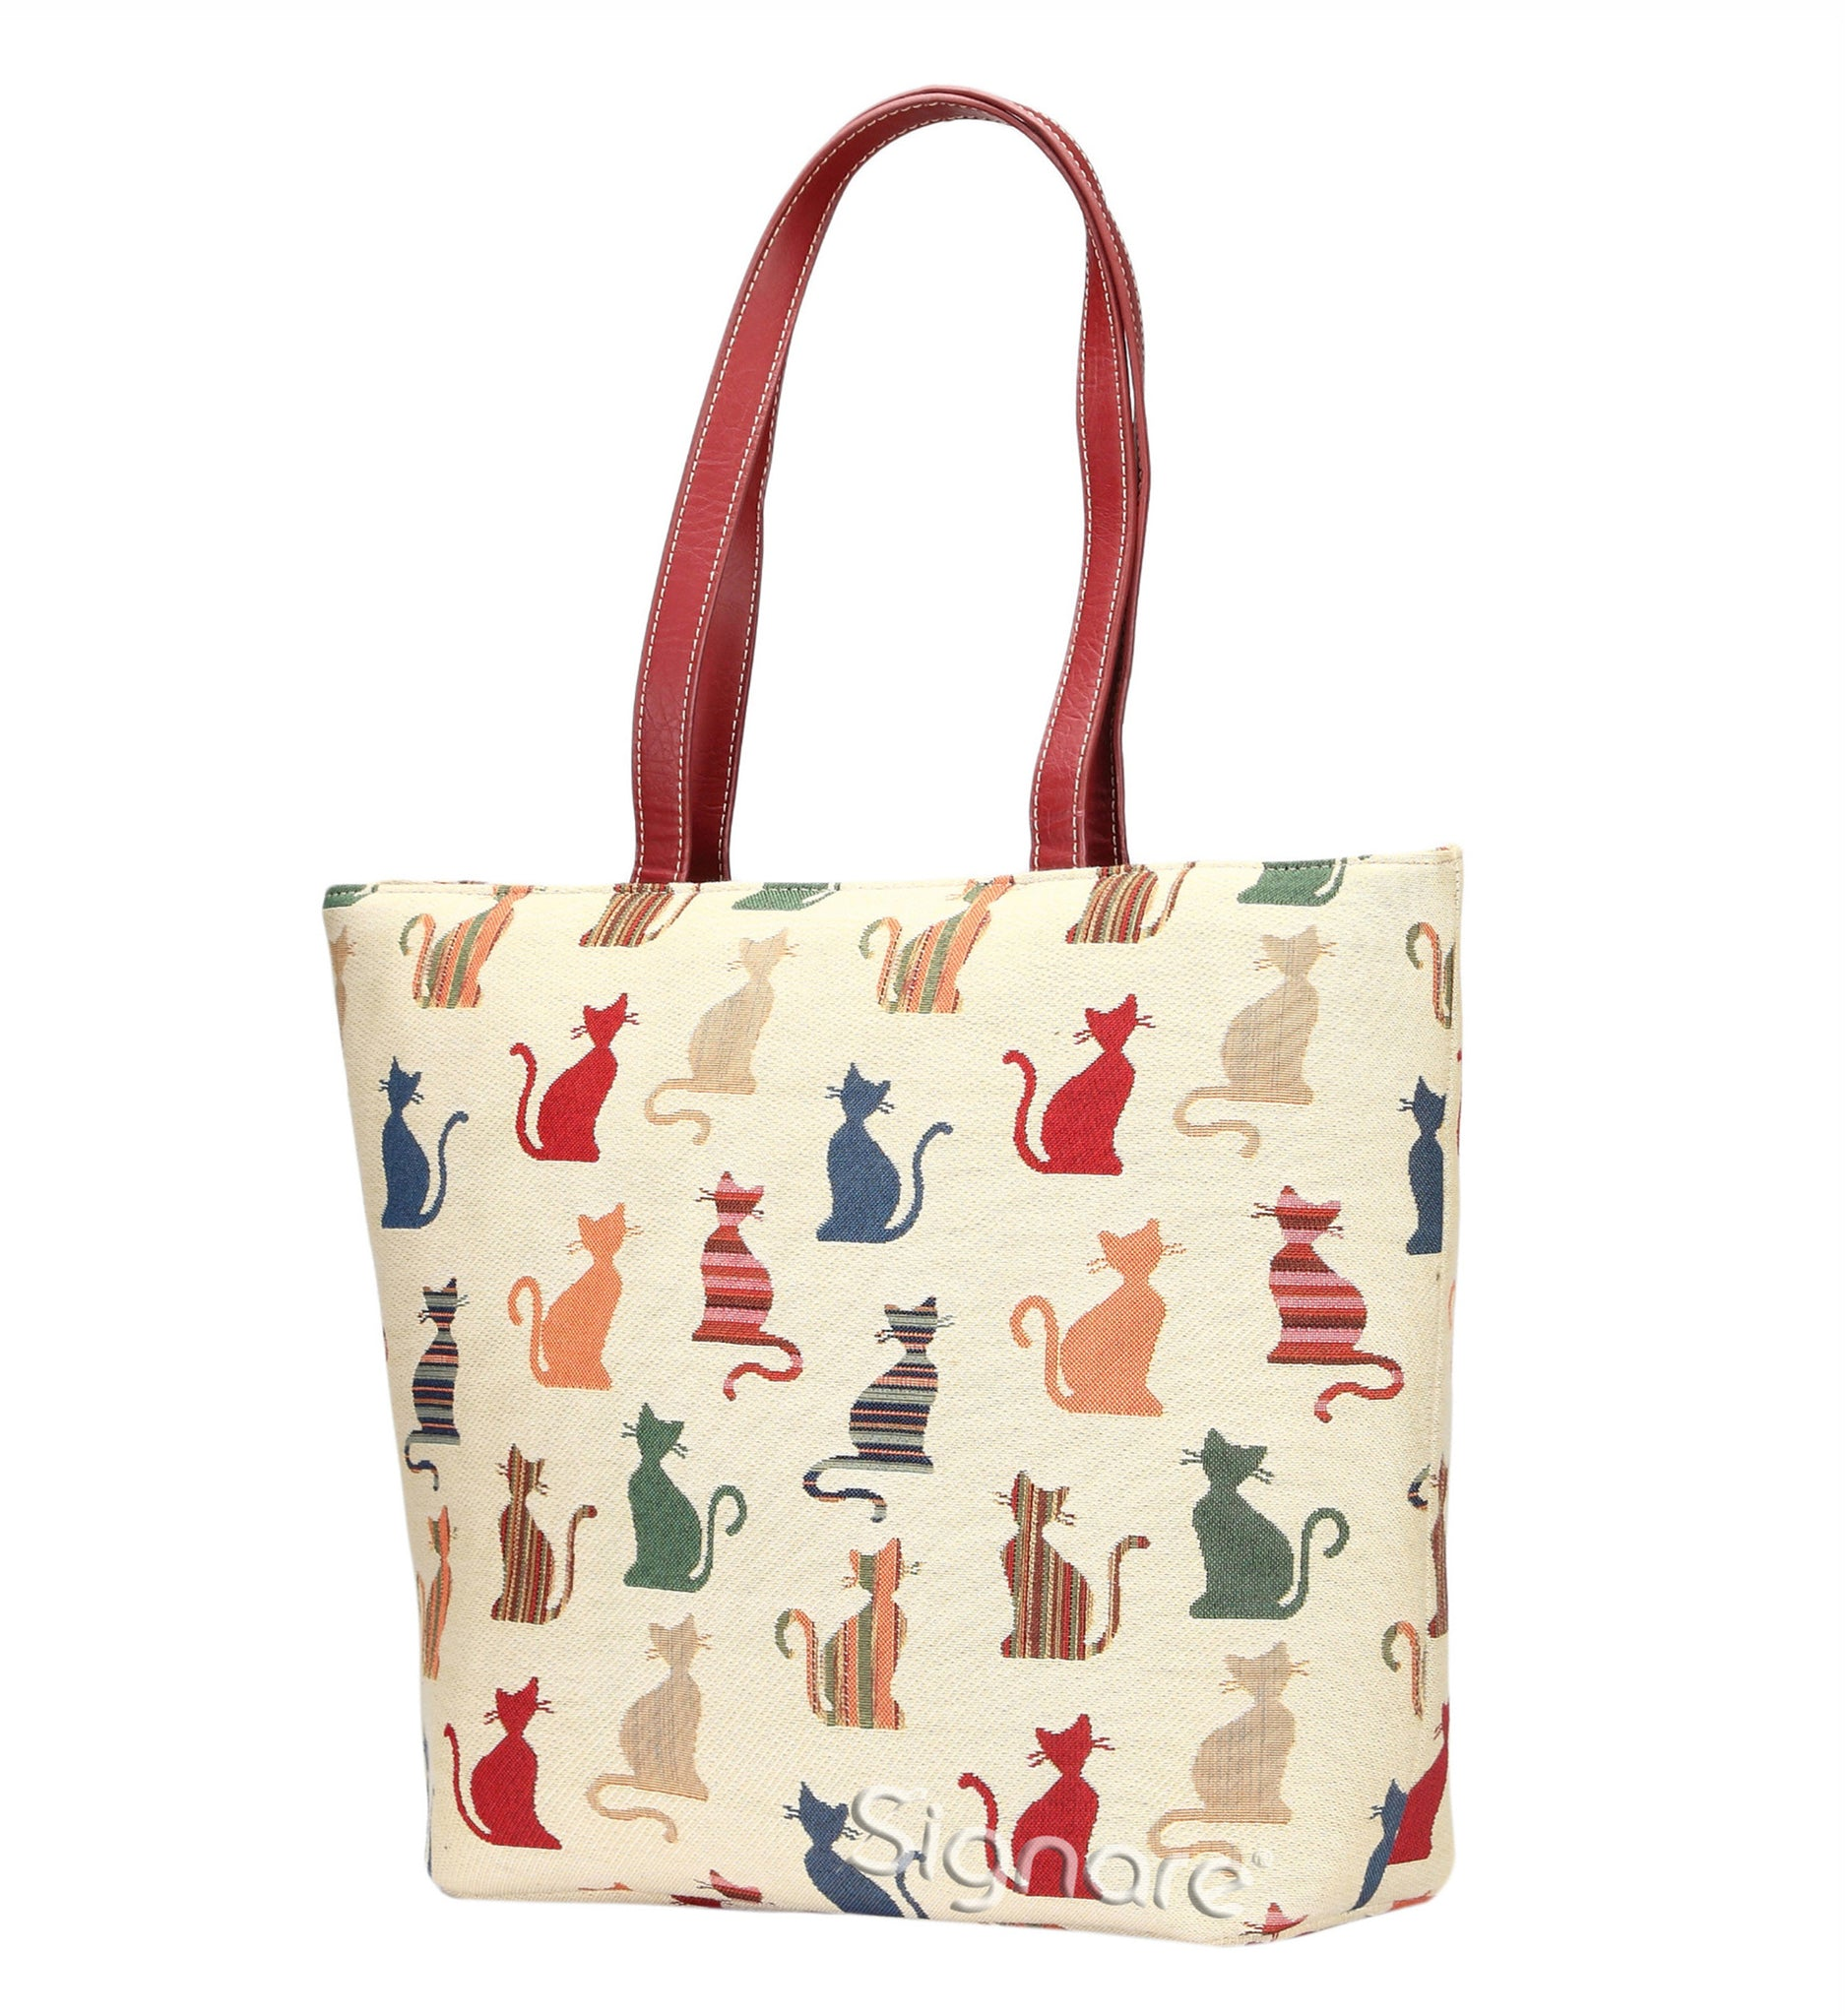 SHOU-CHEKY | CHEEKY CAT SHOULDER BAG TOTE HANDBAG - www.signareusa.com